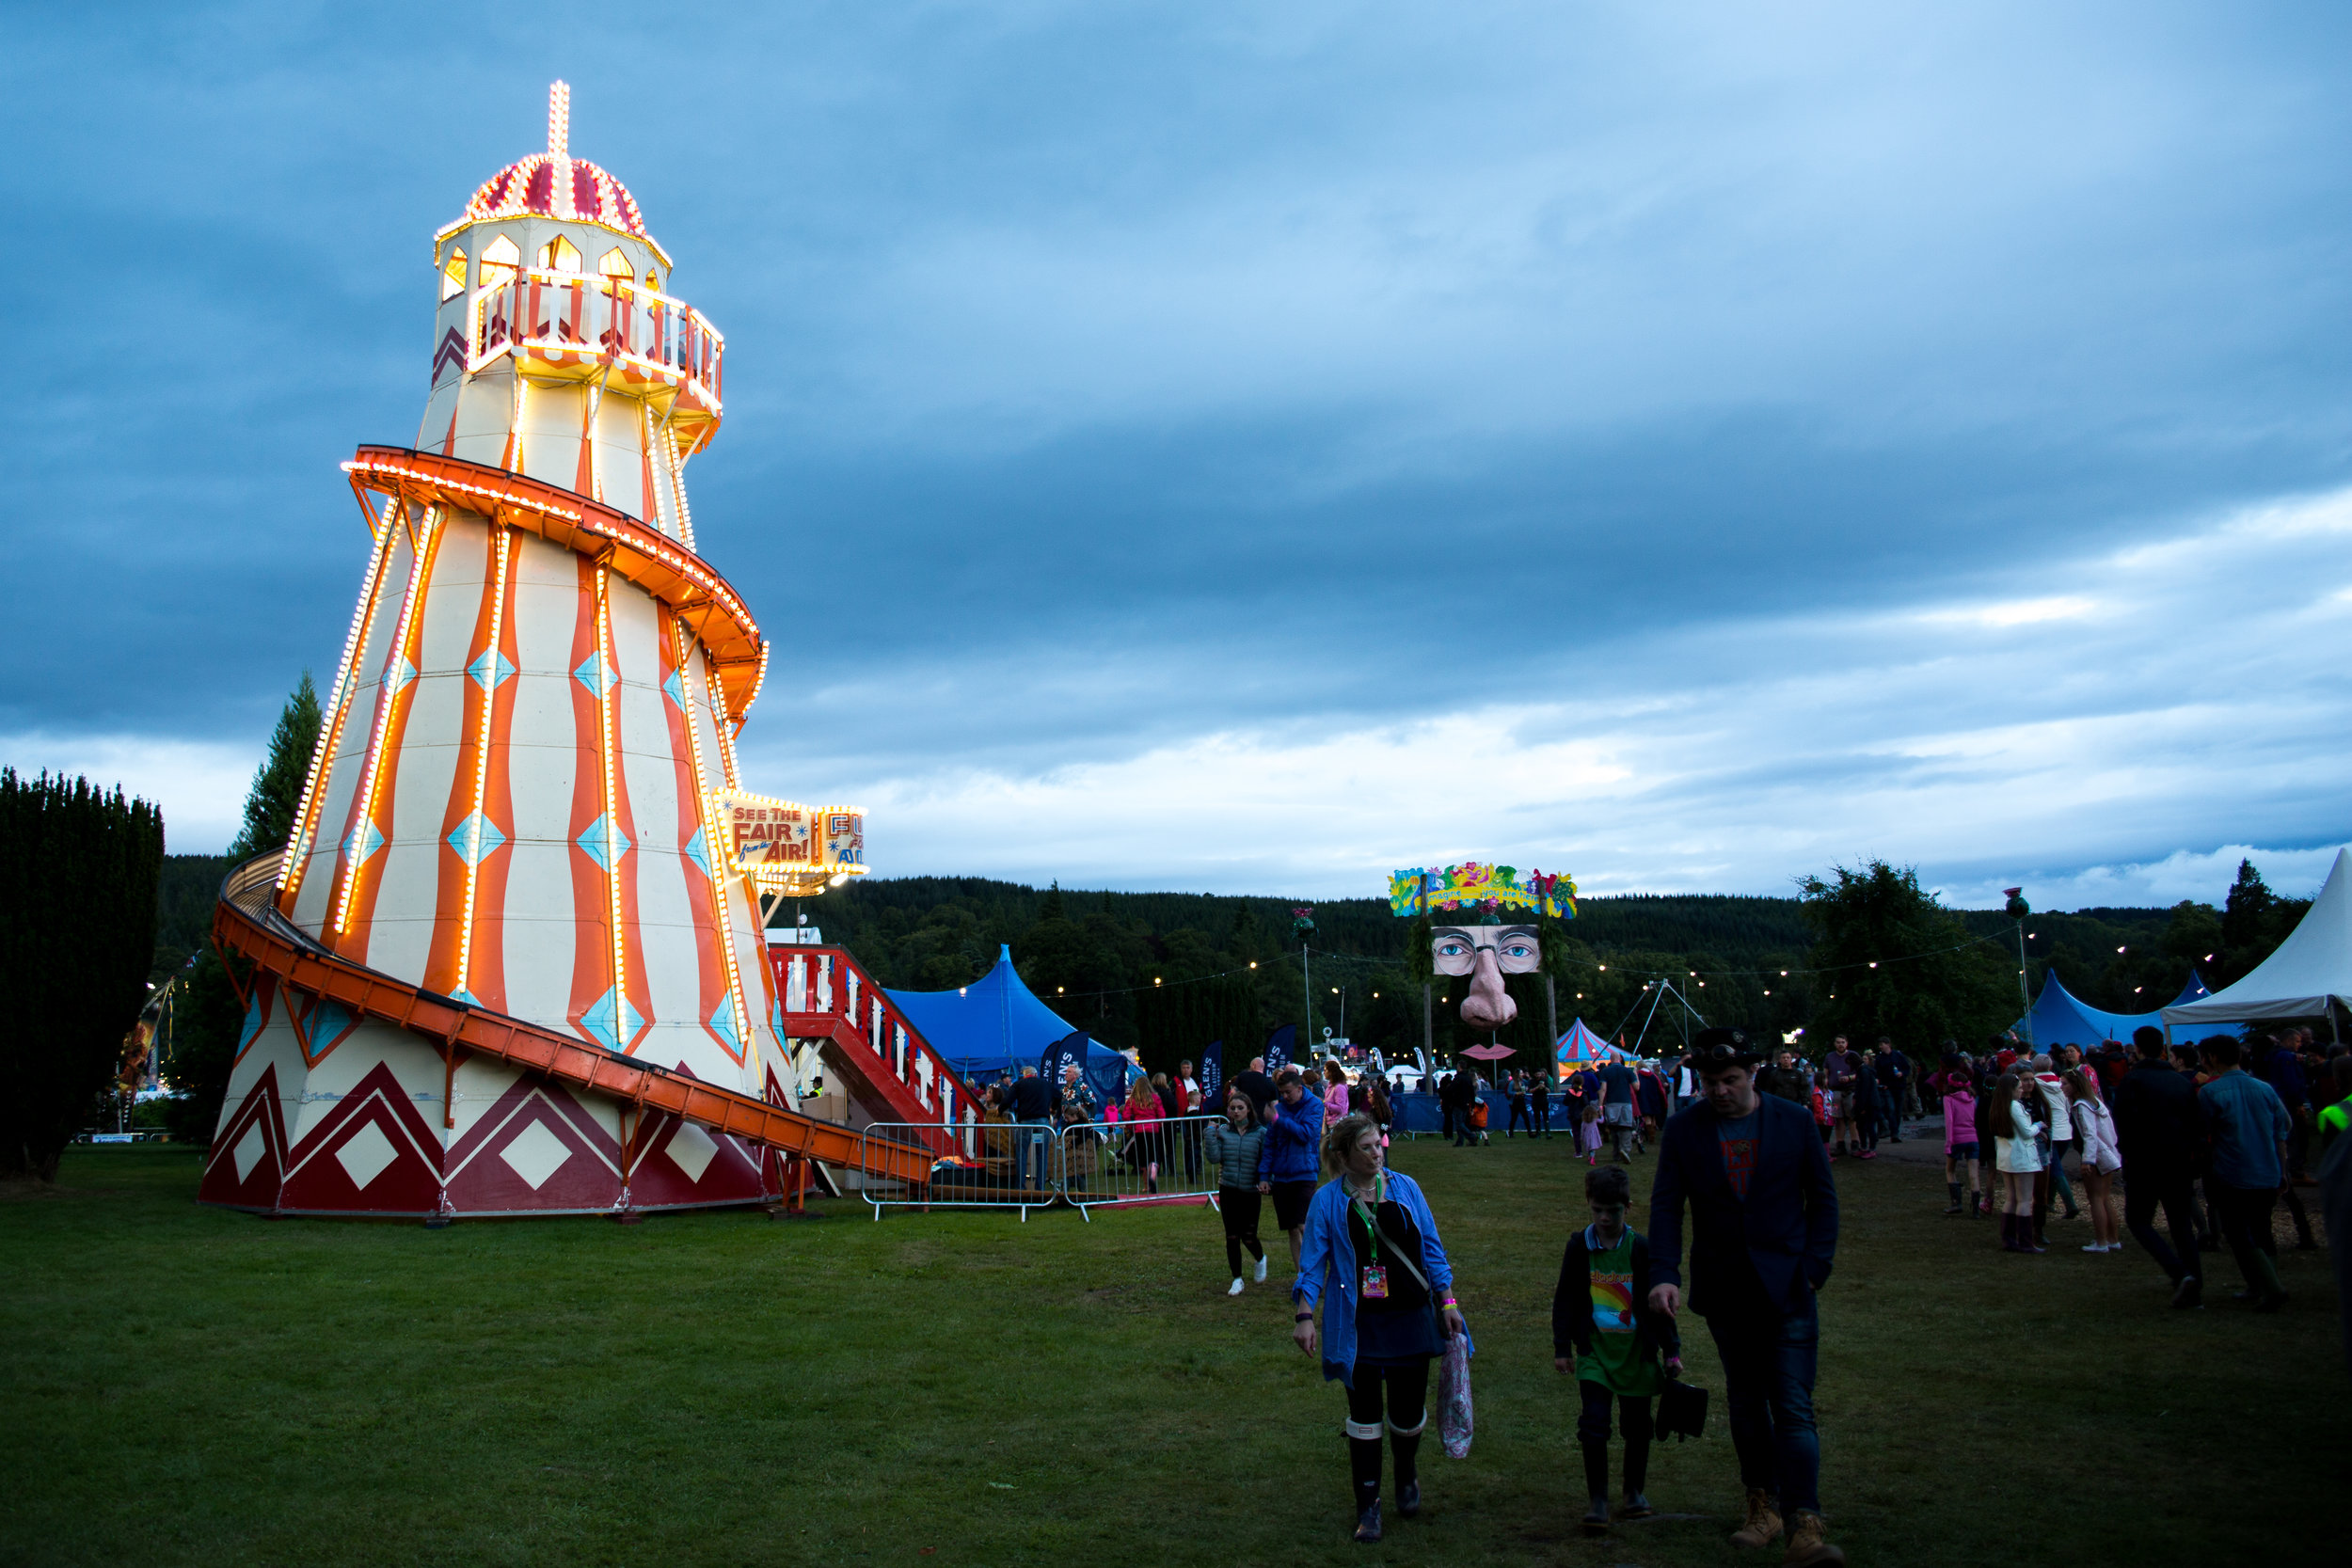 BELLADRUM FESTIVAL 2017 SITE - BELLADRUM ESTATE, BEAULY - 03/04/17 - 05/04/17  PICTURE BY: FINDLAY MACDONALD PHOTOGRAPHY